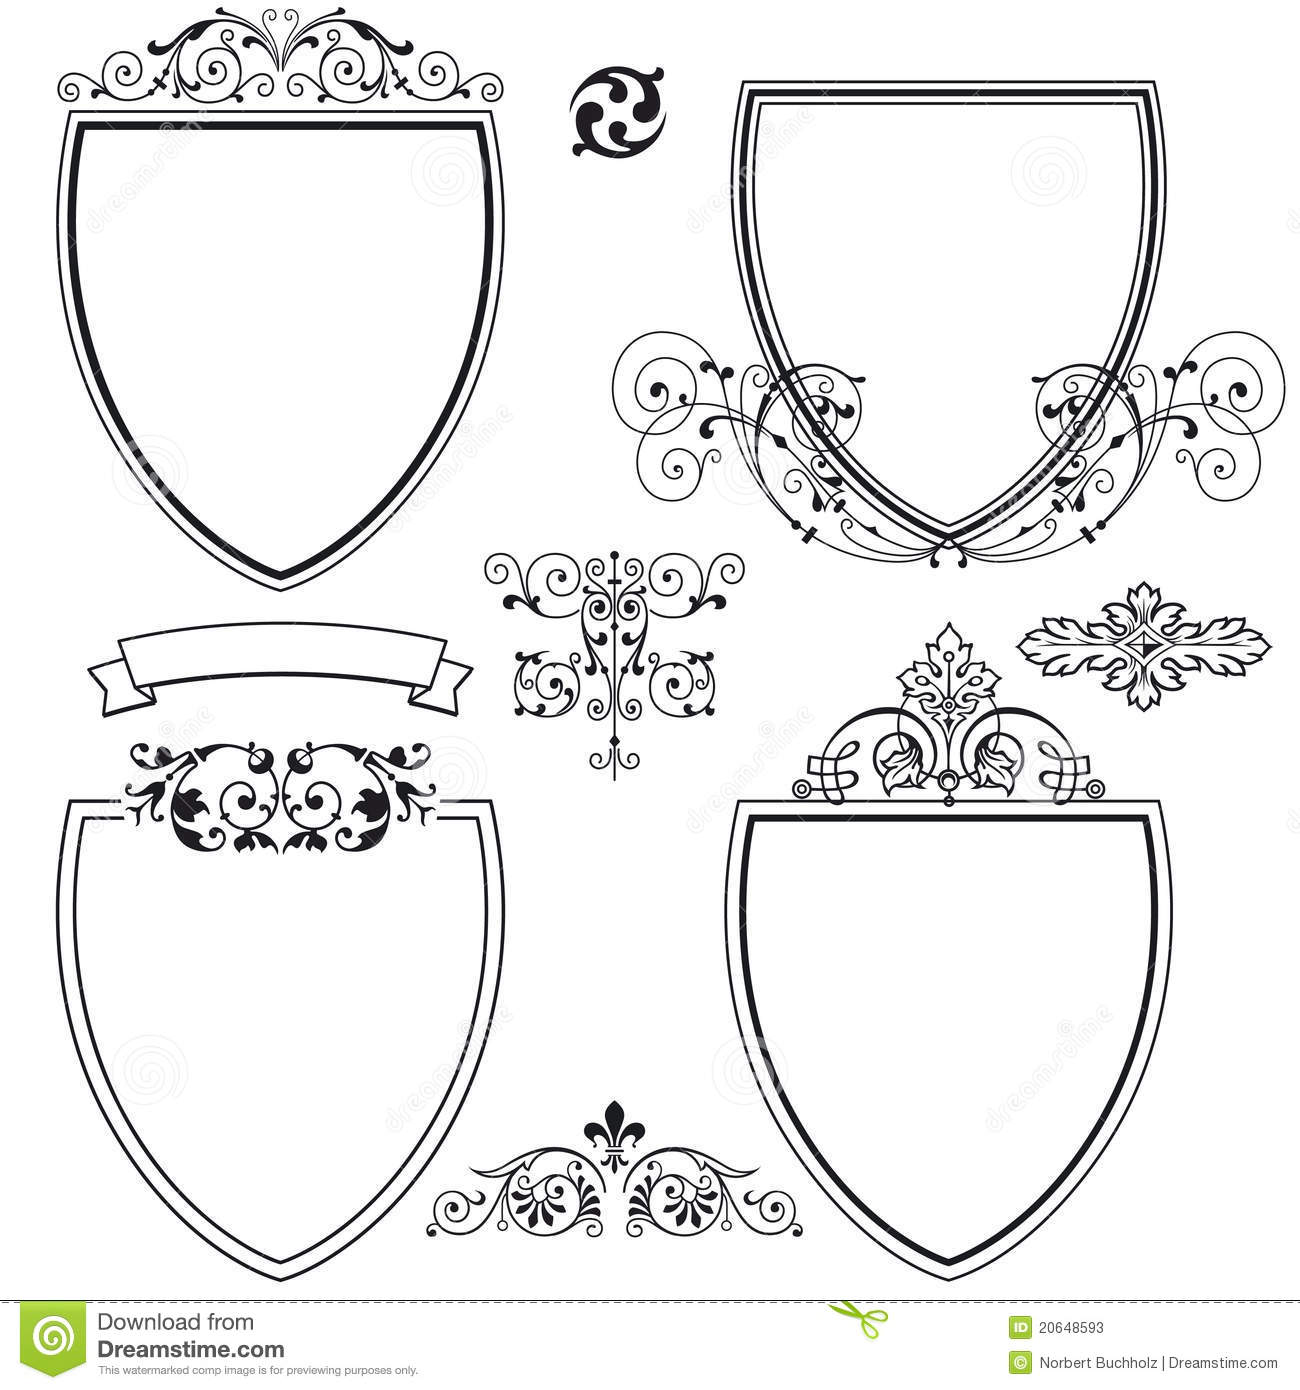 Tattoos additionally Set 01  plete Vector Set also Clipart 183123 in addition Soccer Crest Template further Currency Ornaments Vector Pack. on coat of arms shield shapes with wings